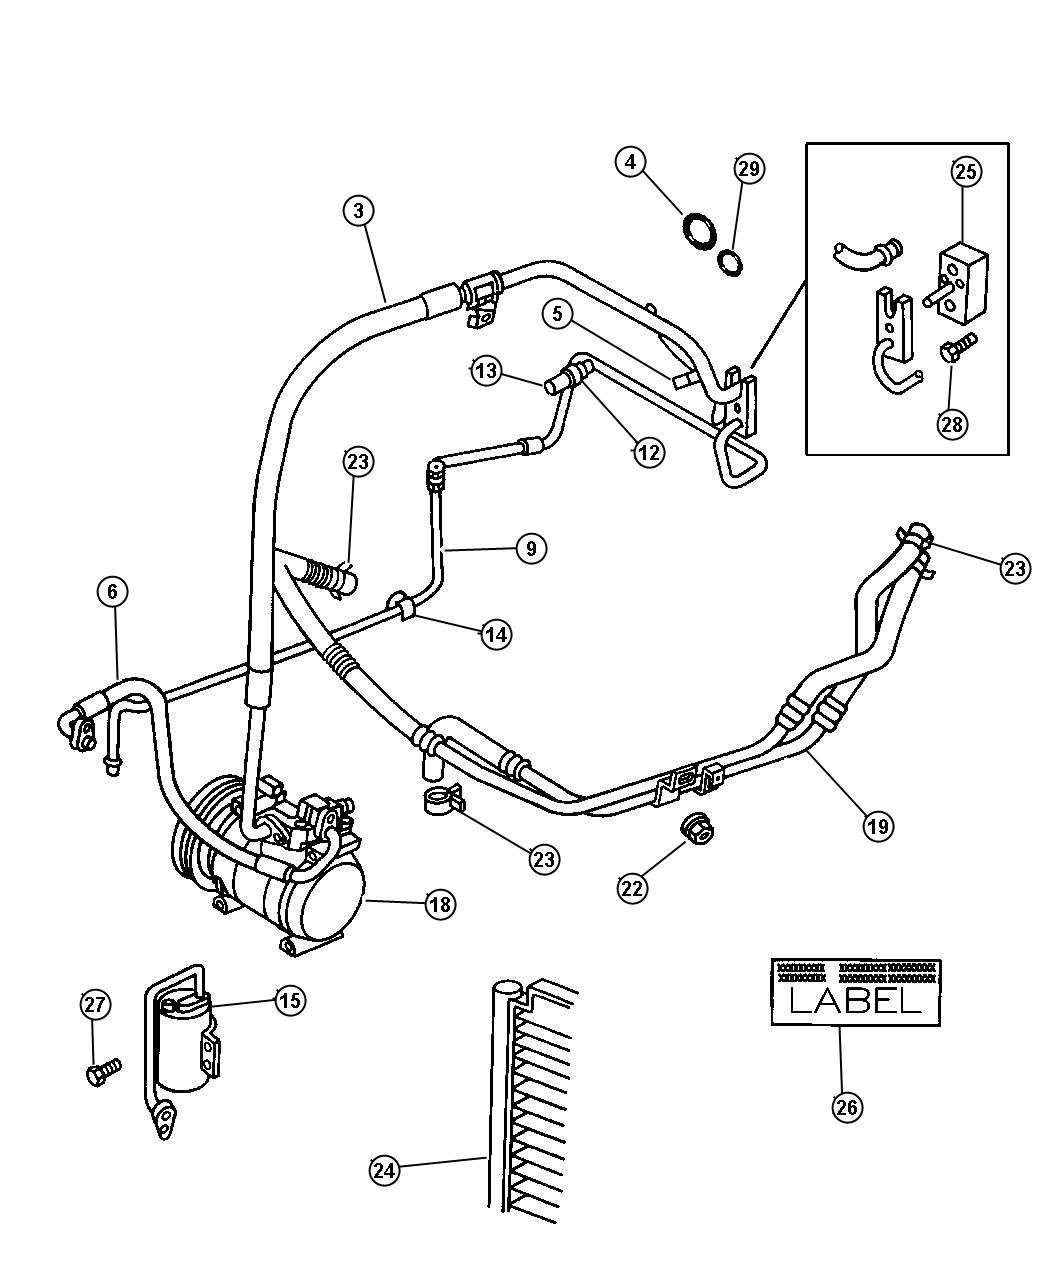 Dodge Caravan Used For Hose And Tube Used For